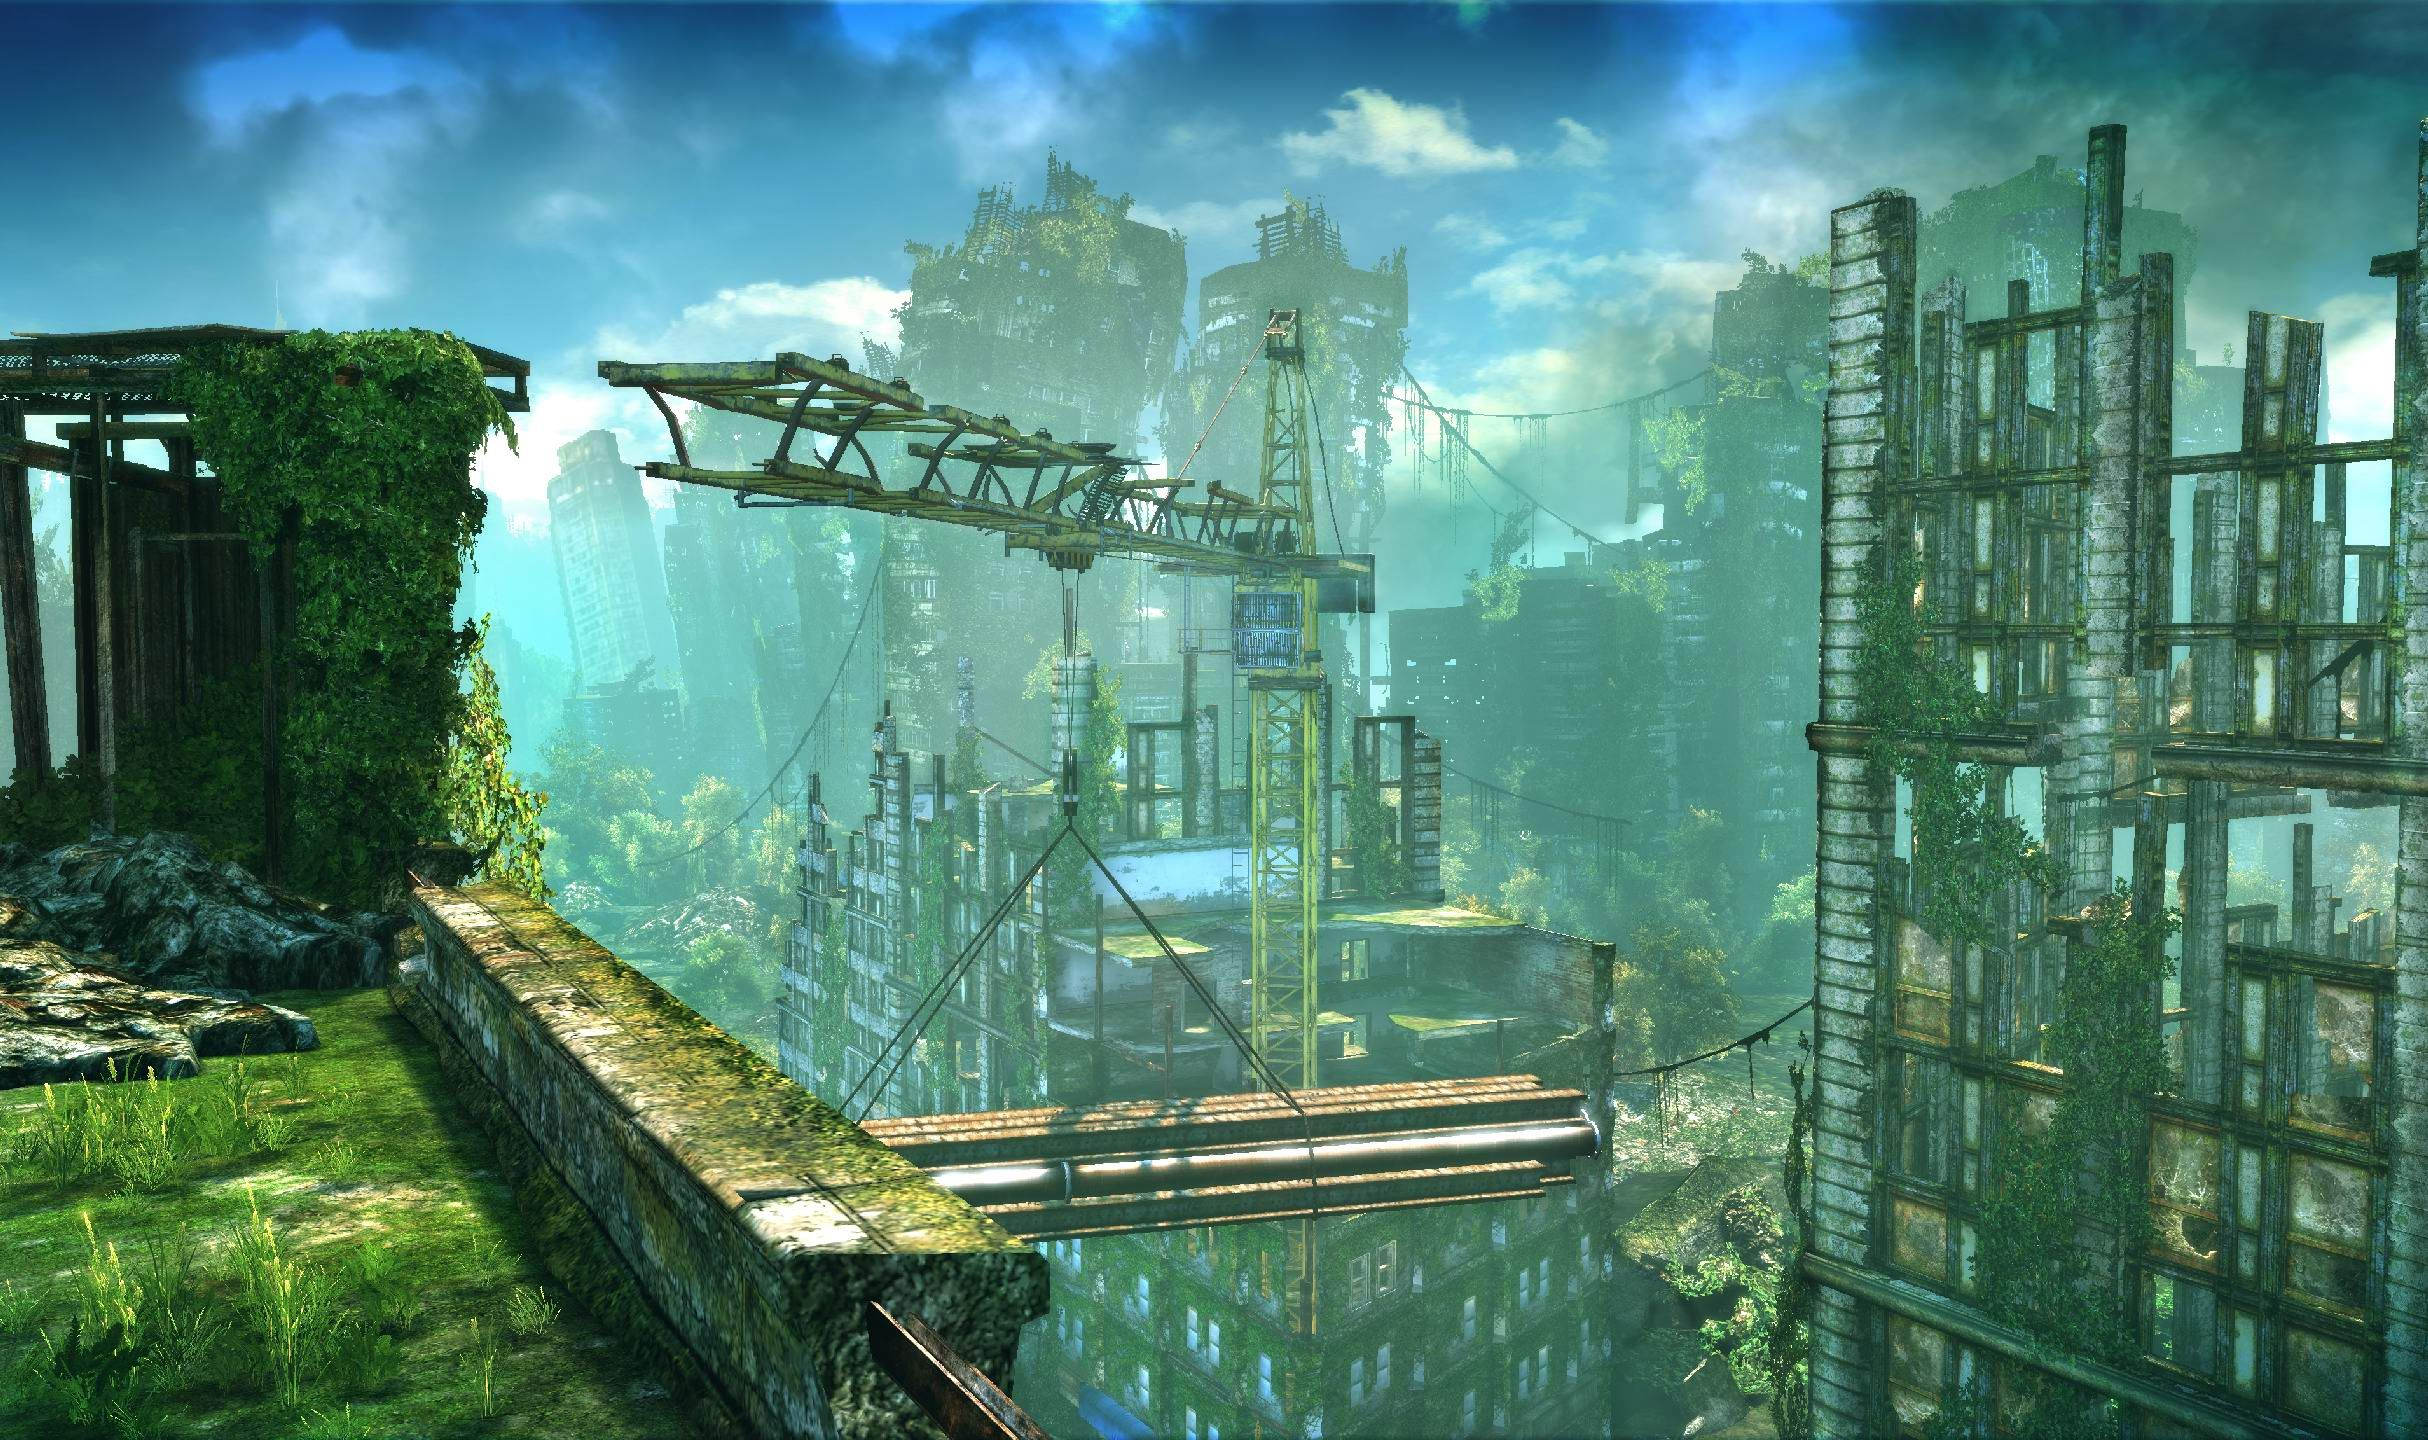 Enslaved odyssey to the west  Industrial/nature